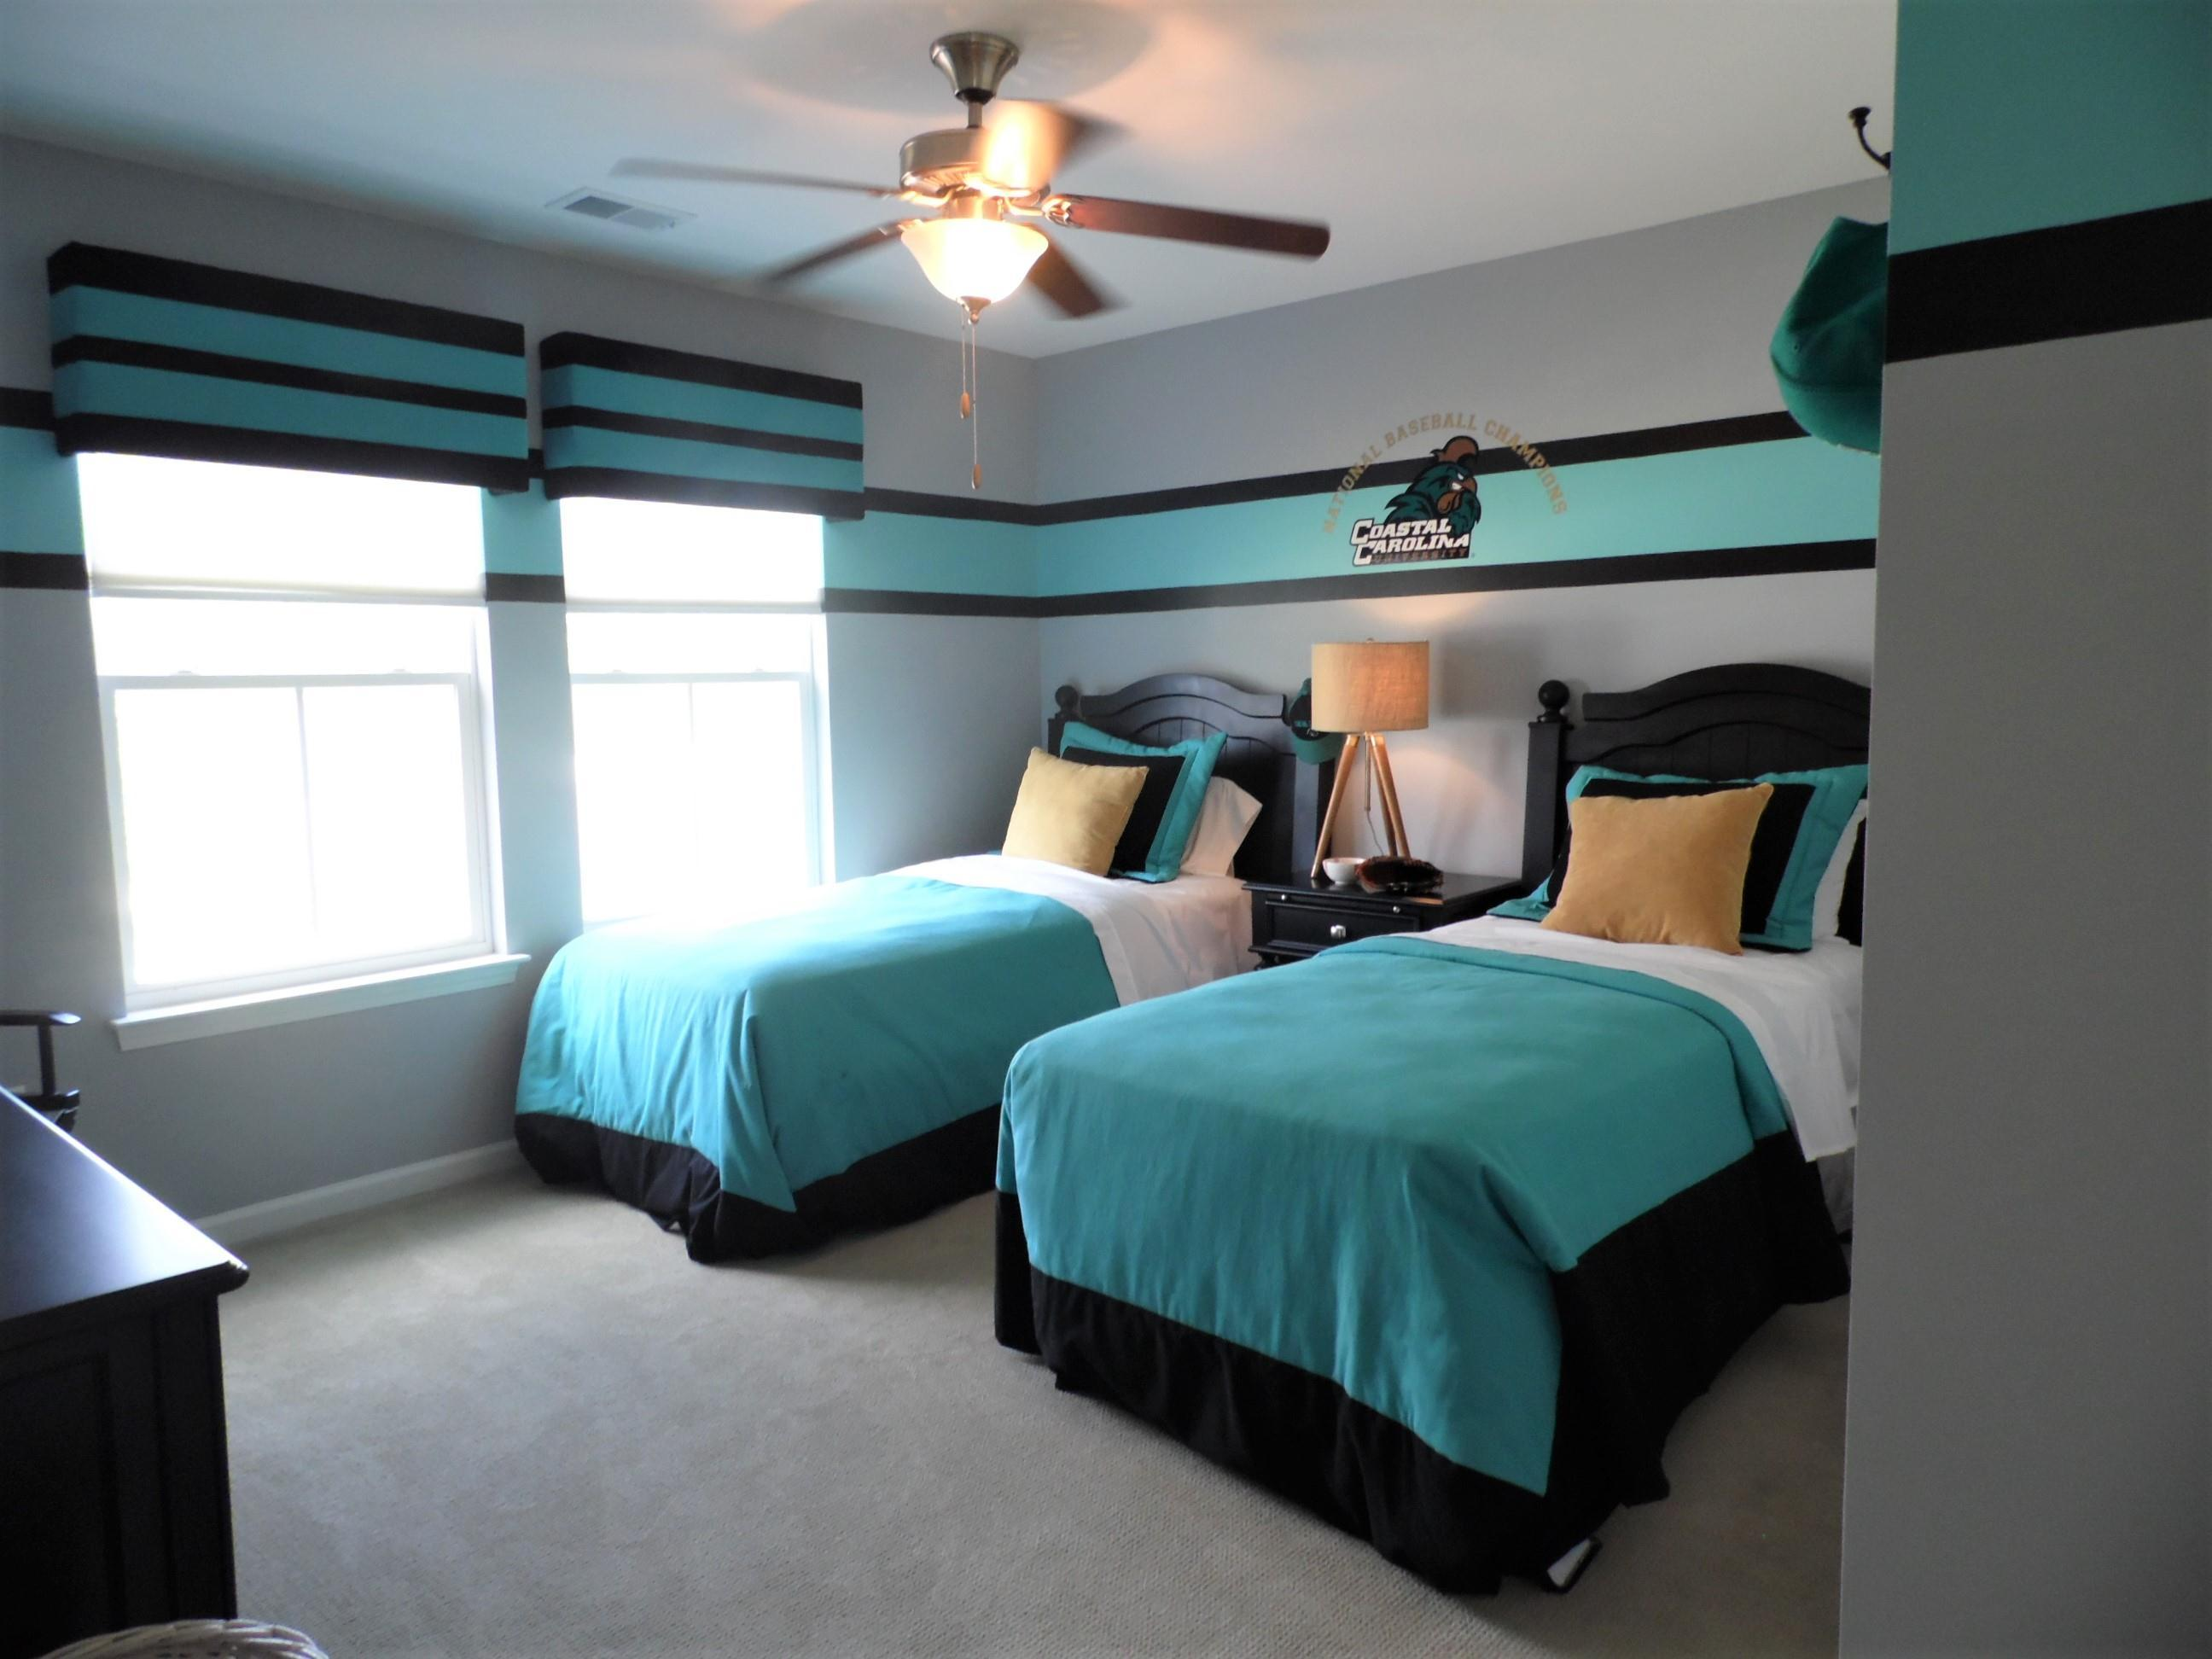 Bedroom featured in the Sequoia By RealStar Homes in Wilmington, NC